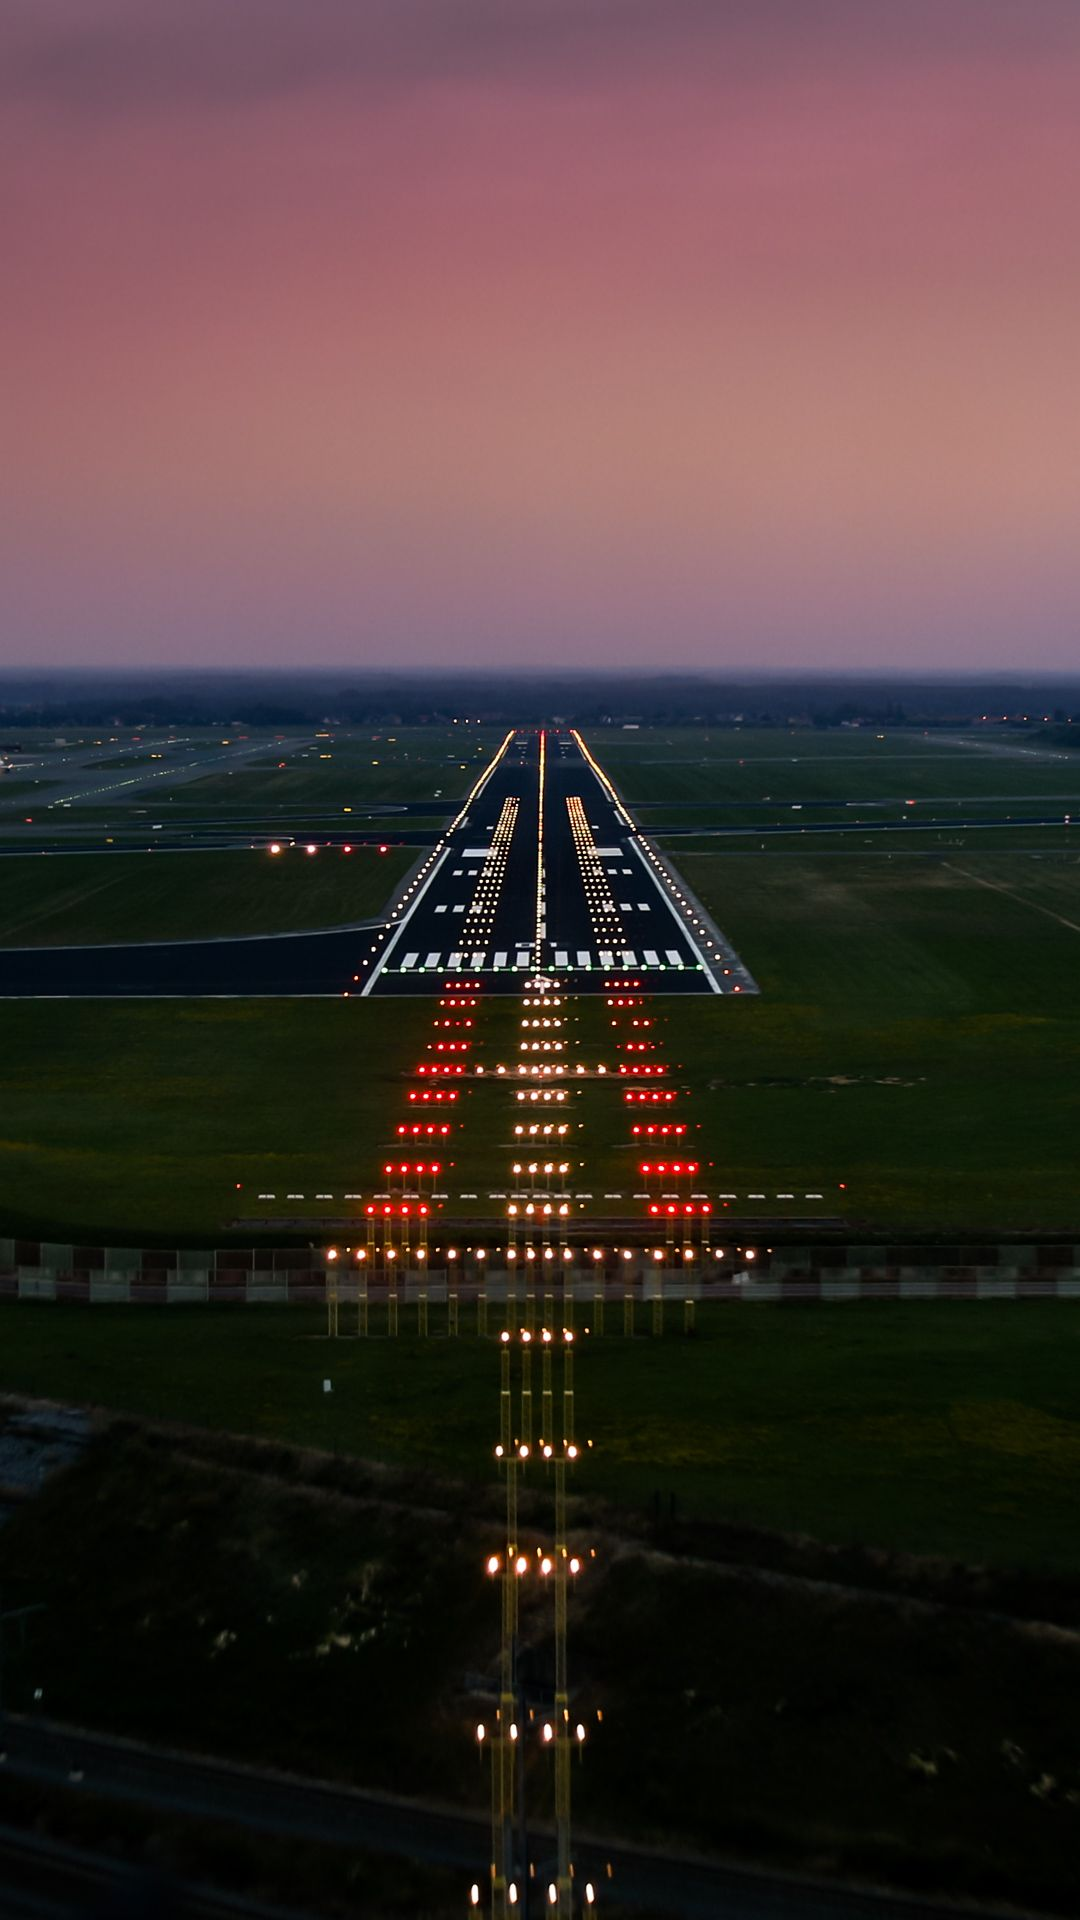 Runway Photo By Gc232 Airplane Wallpaper Airplane Photography